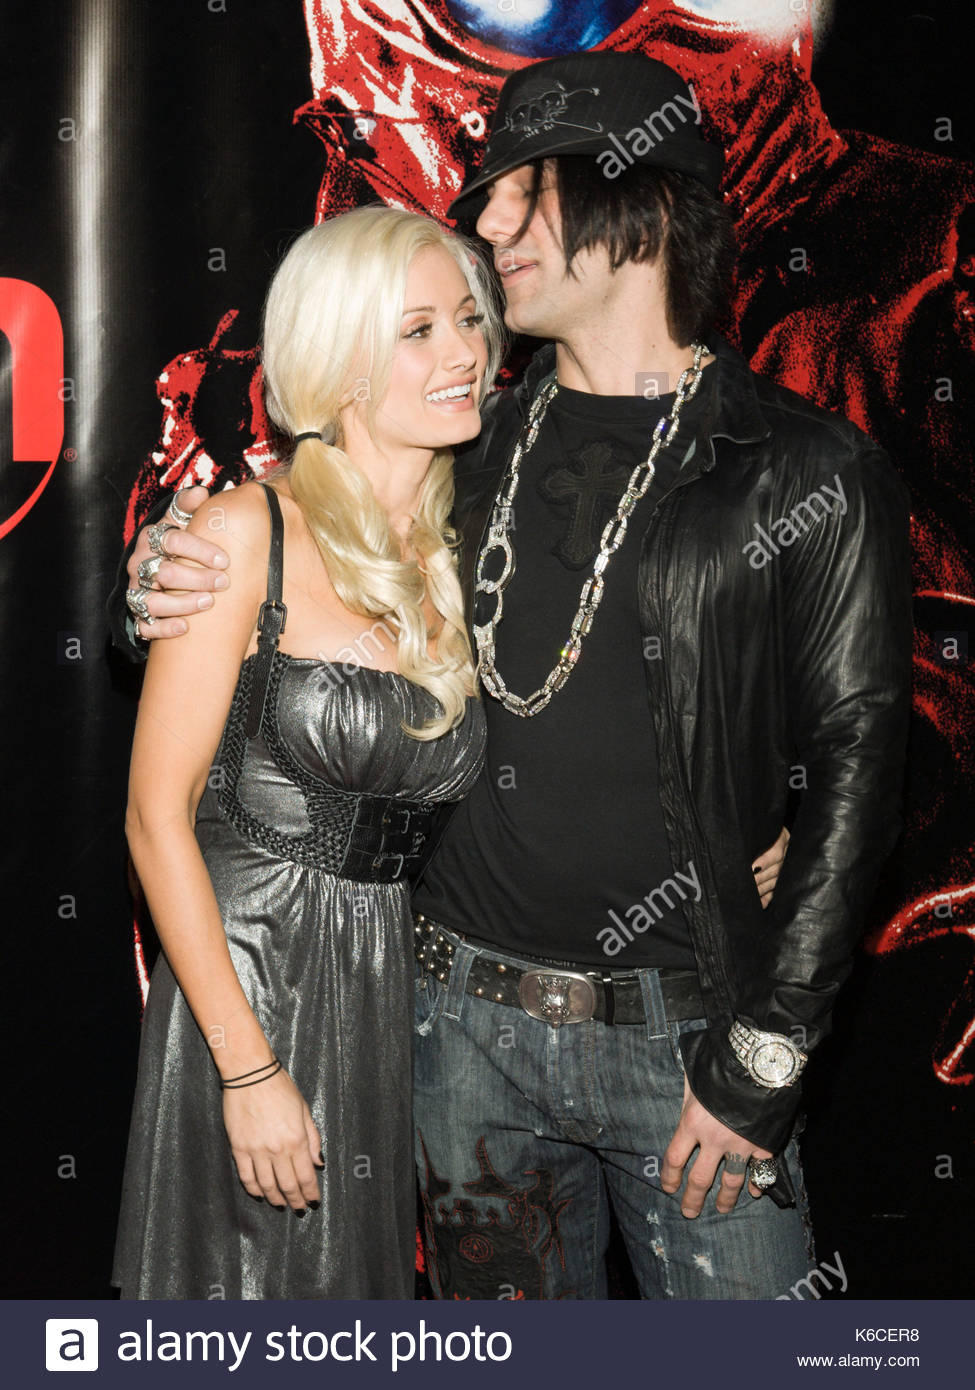 holly madison and criss angel. holly madison and criss angel at the